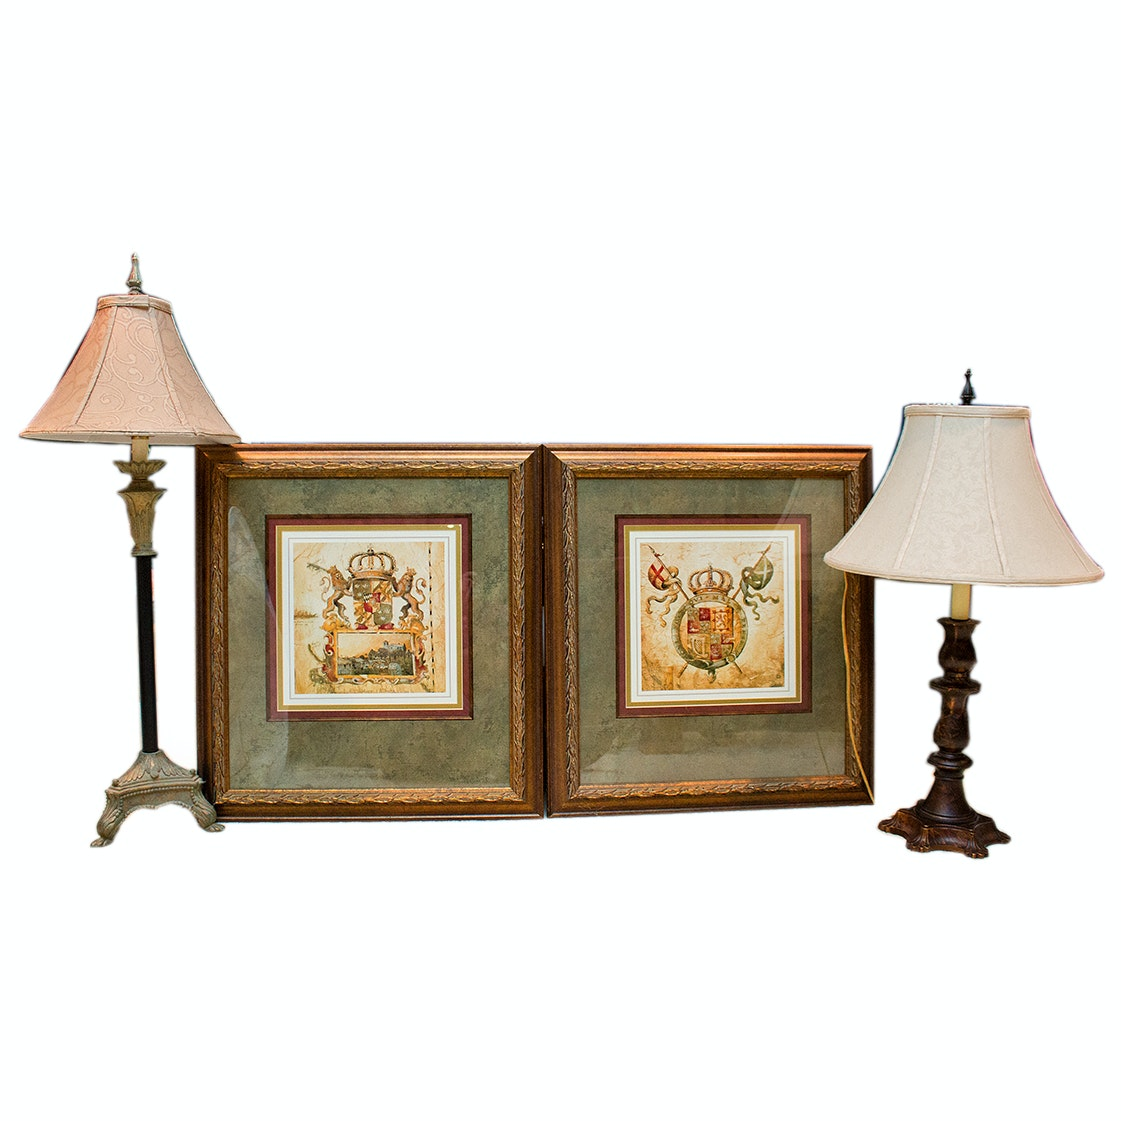 Framed Coat of Arms Art Pieces and Two Table Lamps